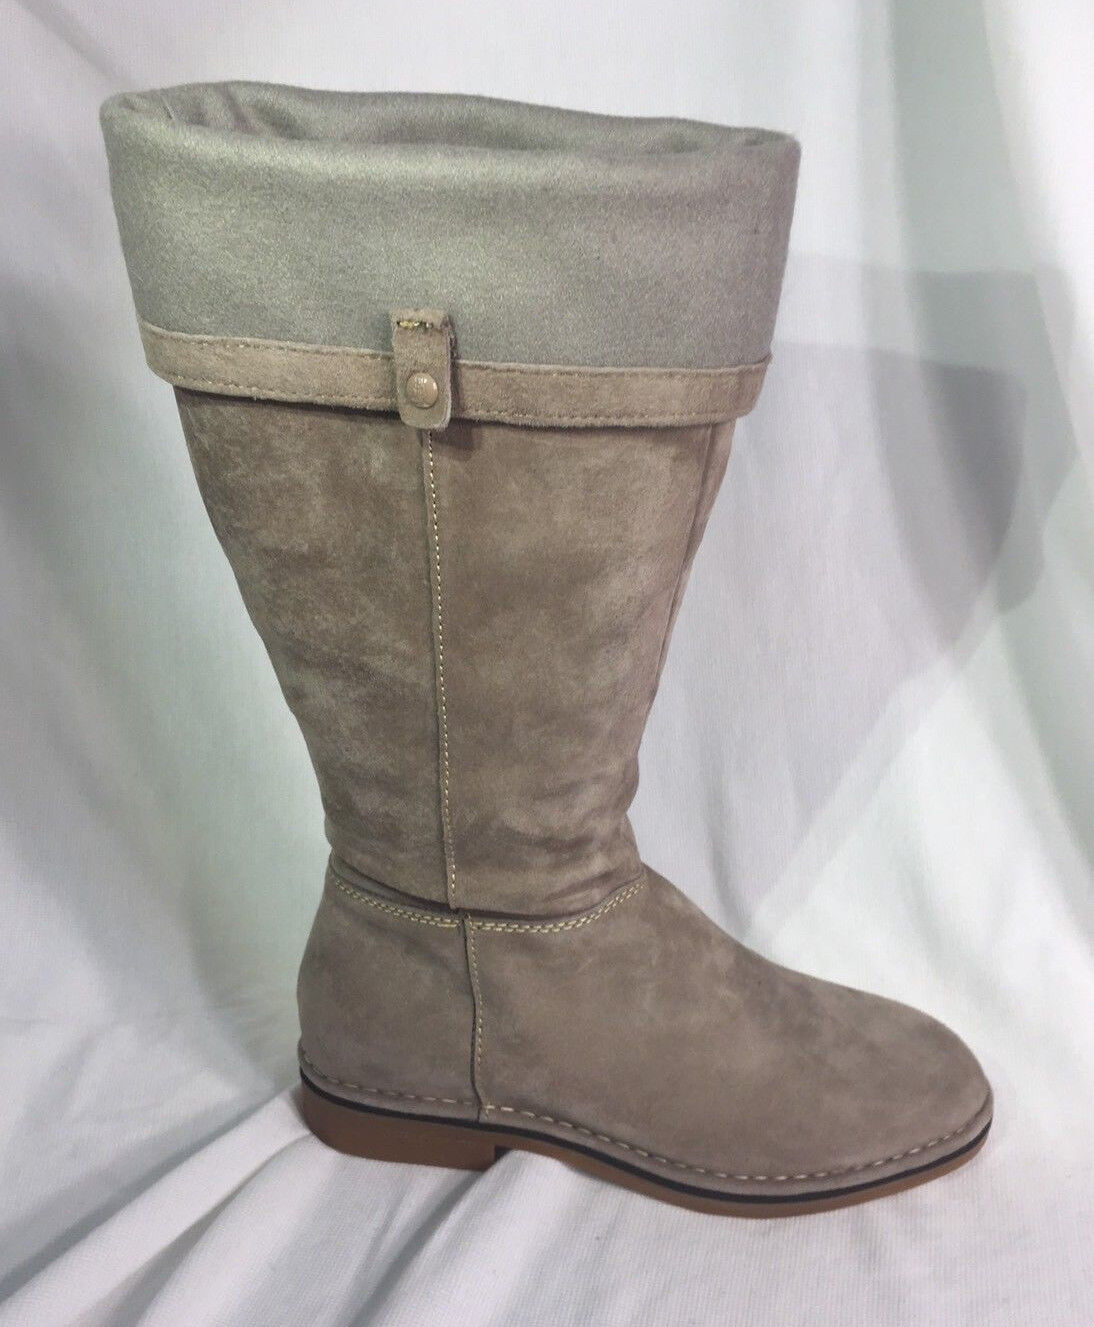 HUSH PUPPIES New CERISE CATELYN Taupe Tall Boots NIB  Women's shoes 7.5 W Wide